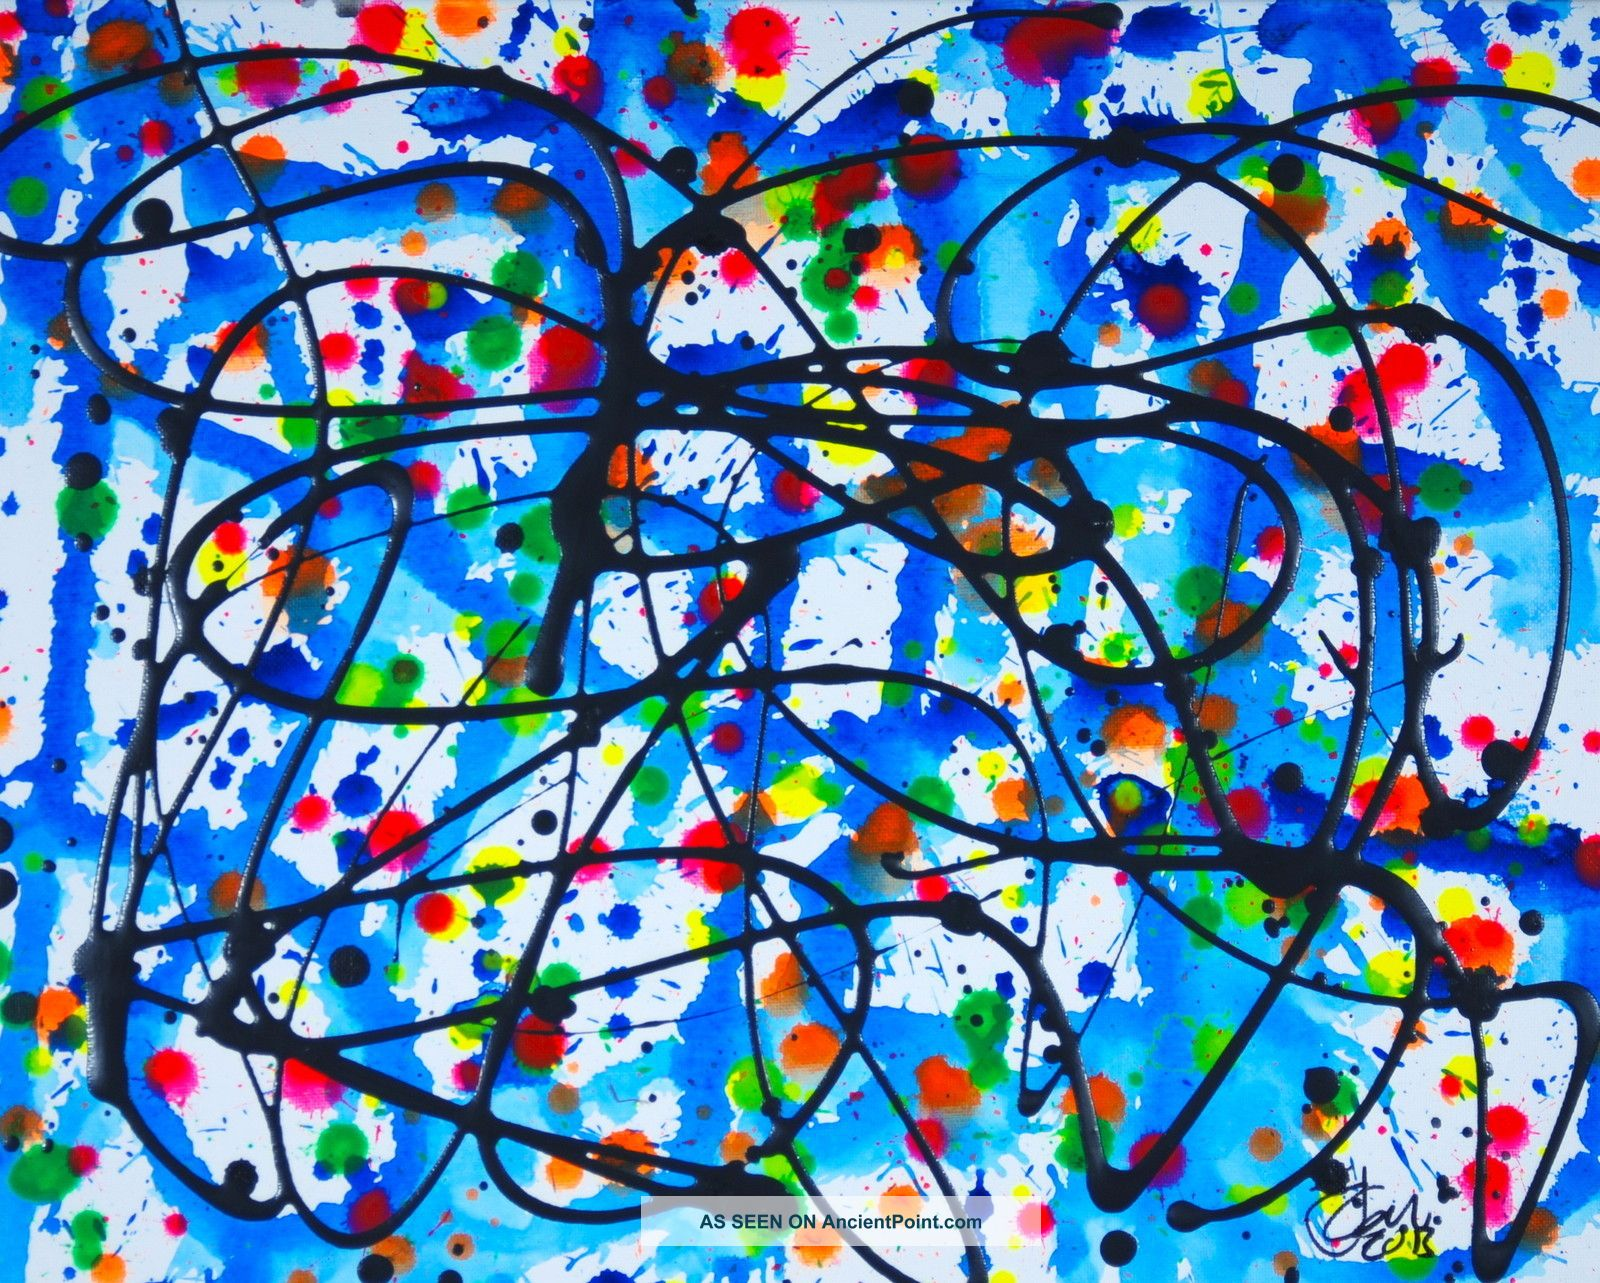 Most Famous Abstract Paintings Famous Abstract Art: Biography Of Famous Artists